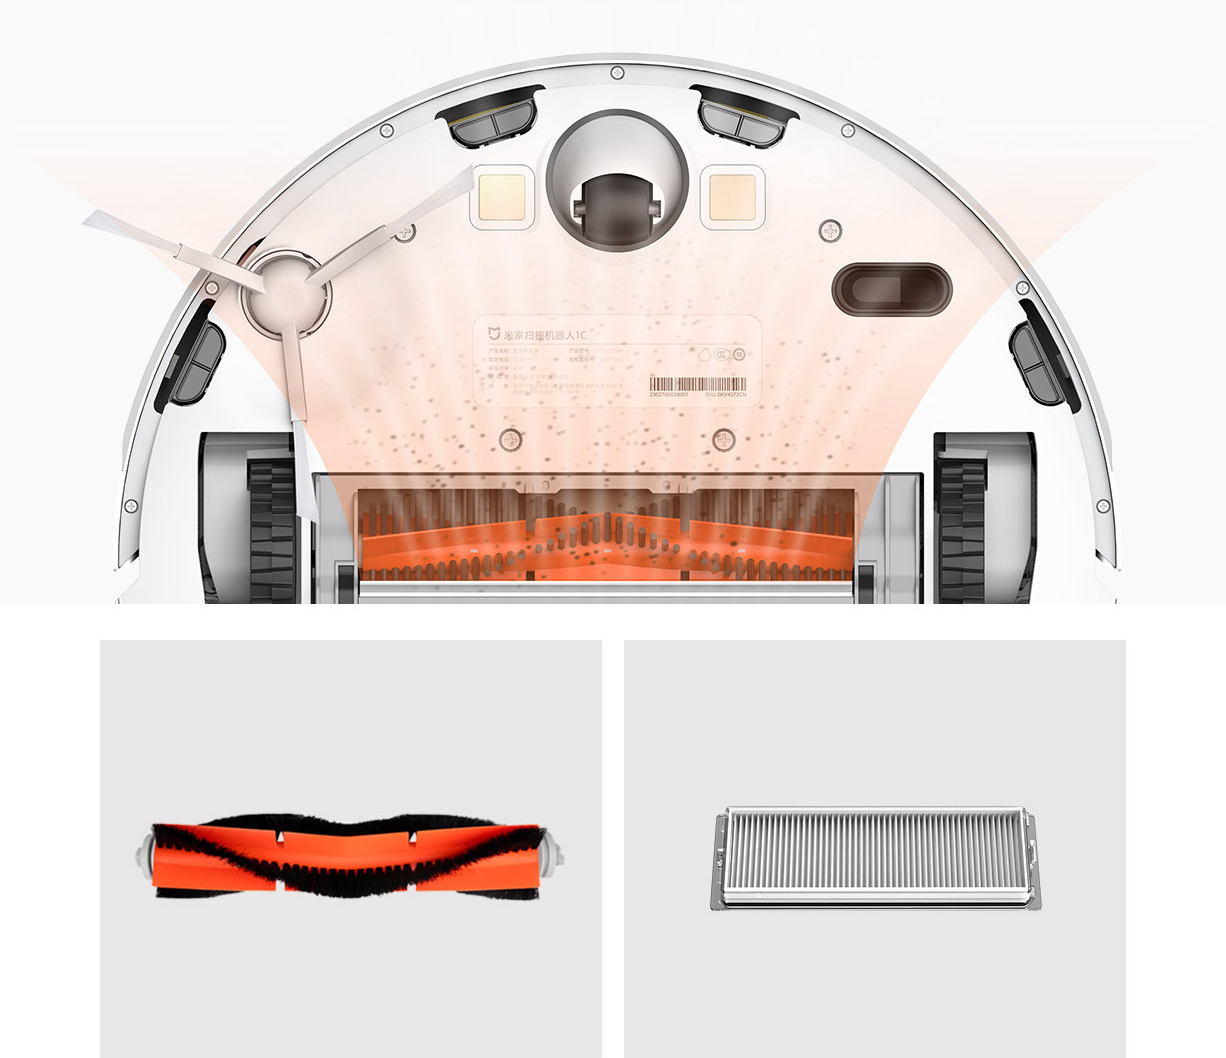 Xiaomi Mi Robot Vacuum Cleaner 1C Sweeping Mopping STYTJ01ZHM for Home Automatic Dust Sterilize Smart Planned Xiaomi Mi Robot Vacuum Cleaner 1C Sweeping Mopping STYTJ01ZHM for Home Automatic Dust Sterilize Smart Planned Cleaner